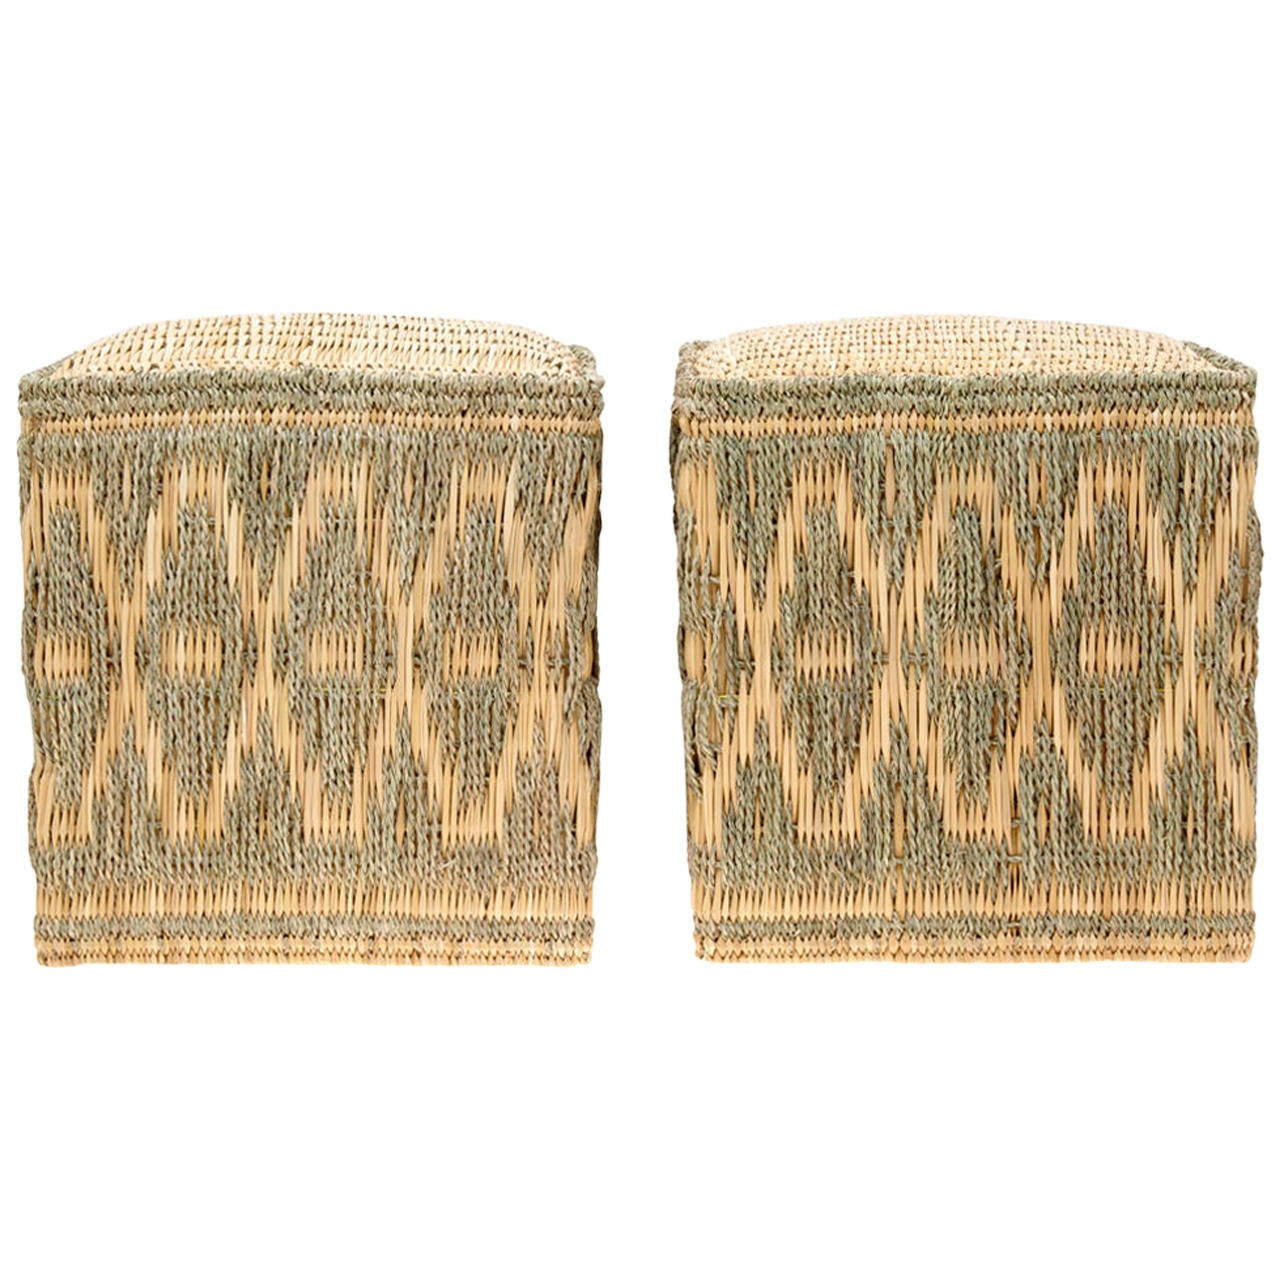 Pair of Wicker Stools with Cord Decorations at 1stdibs : 2114082l from www.1stdibs.com size 1280 x 1280 jpeg 225kB